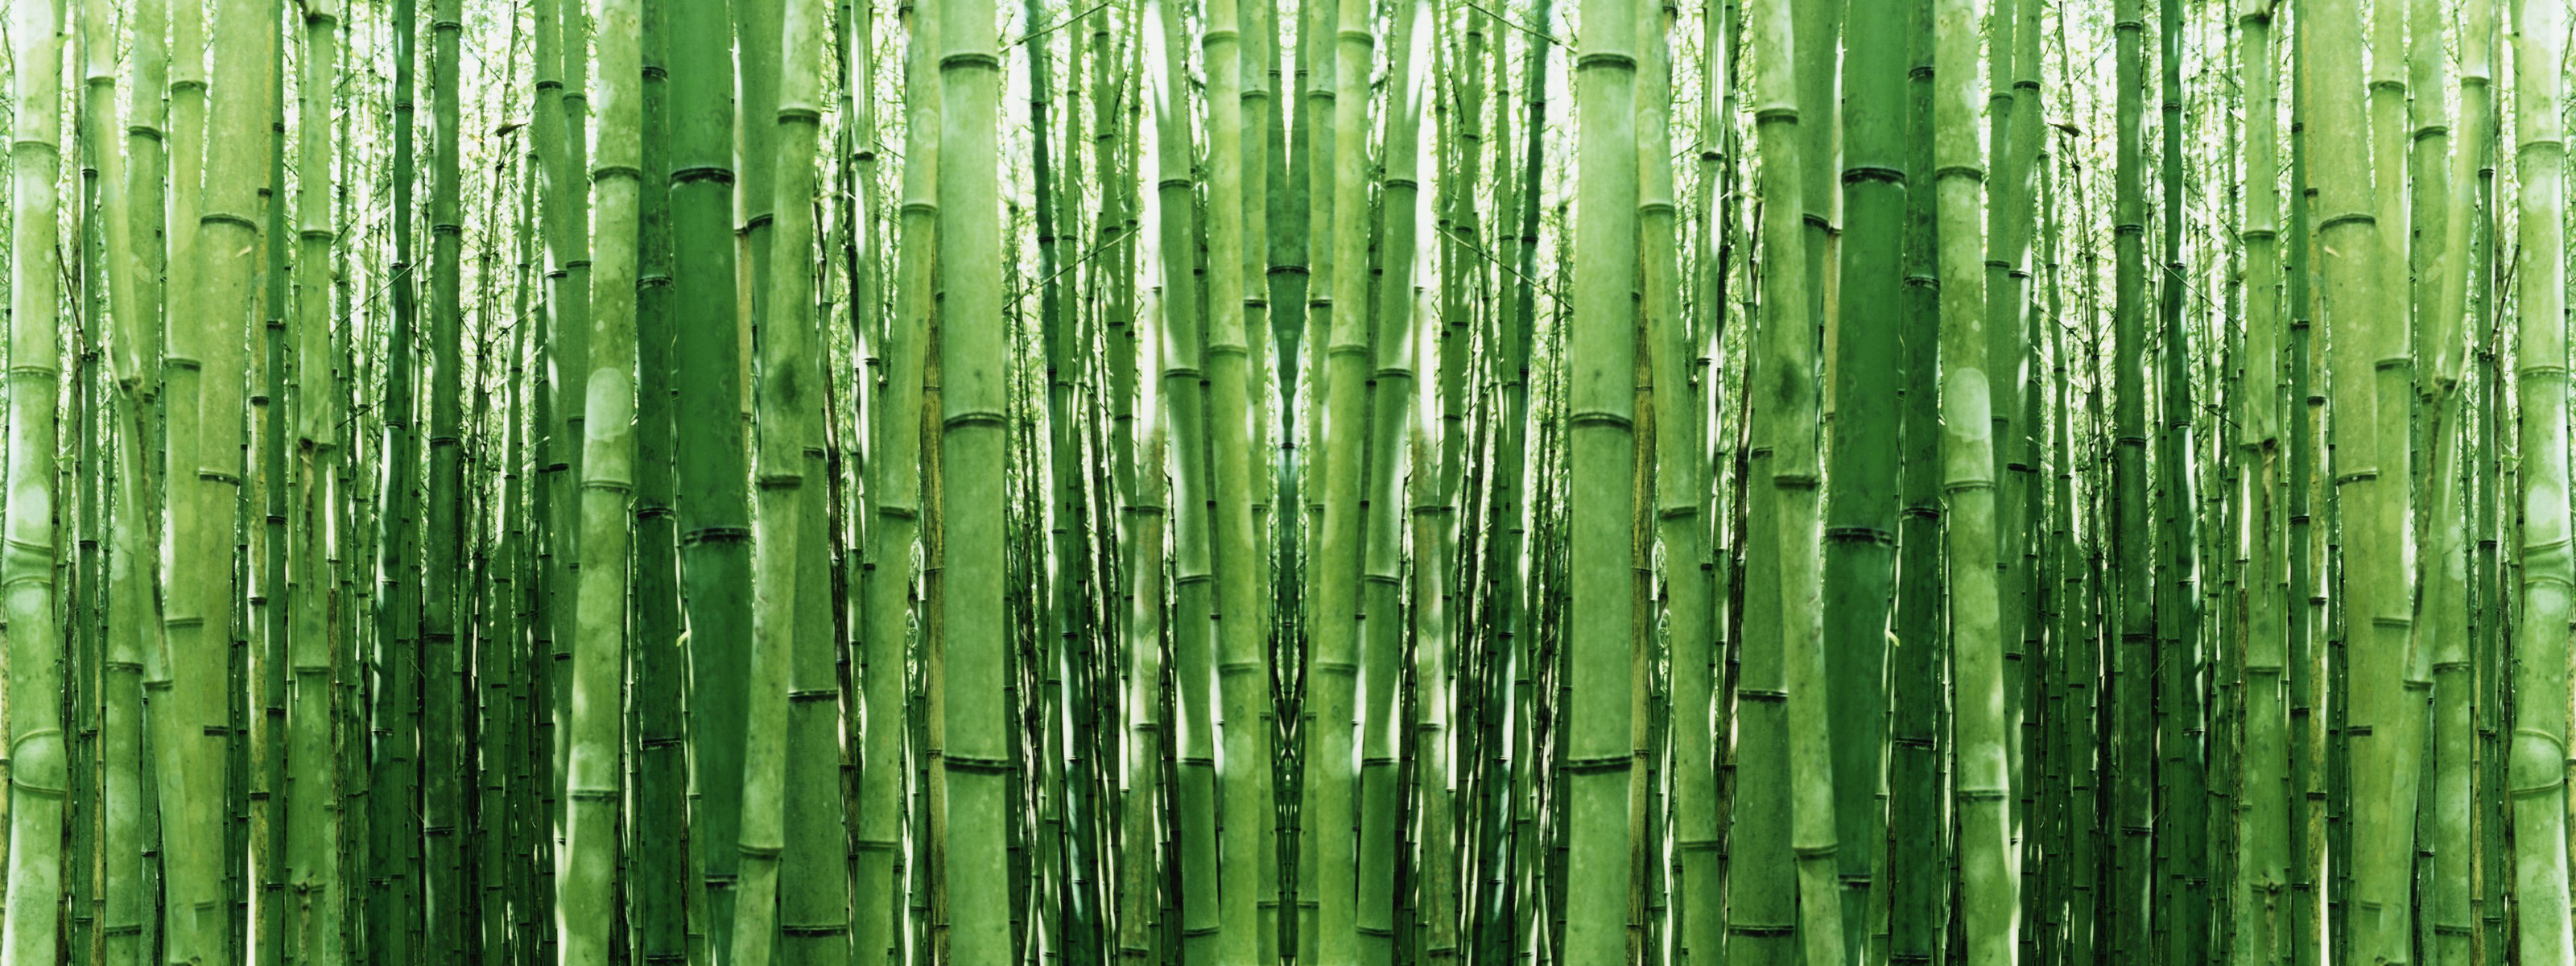 Bamboo Forest Japan Computer Wallpaper 51 Images